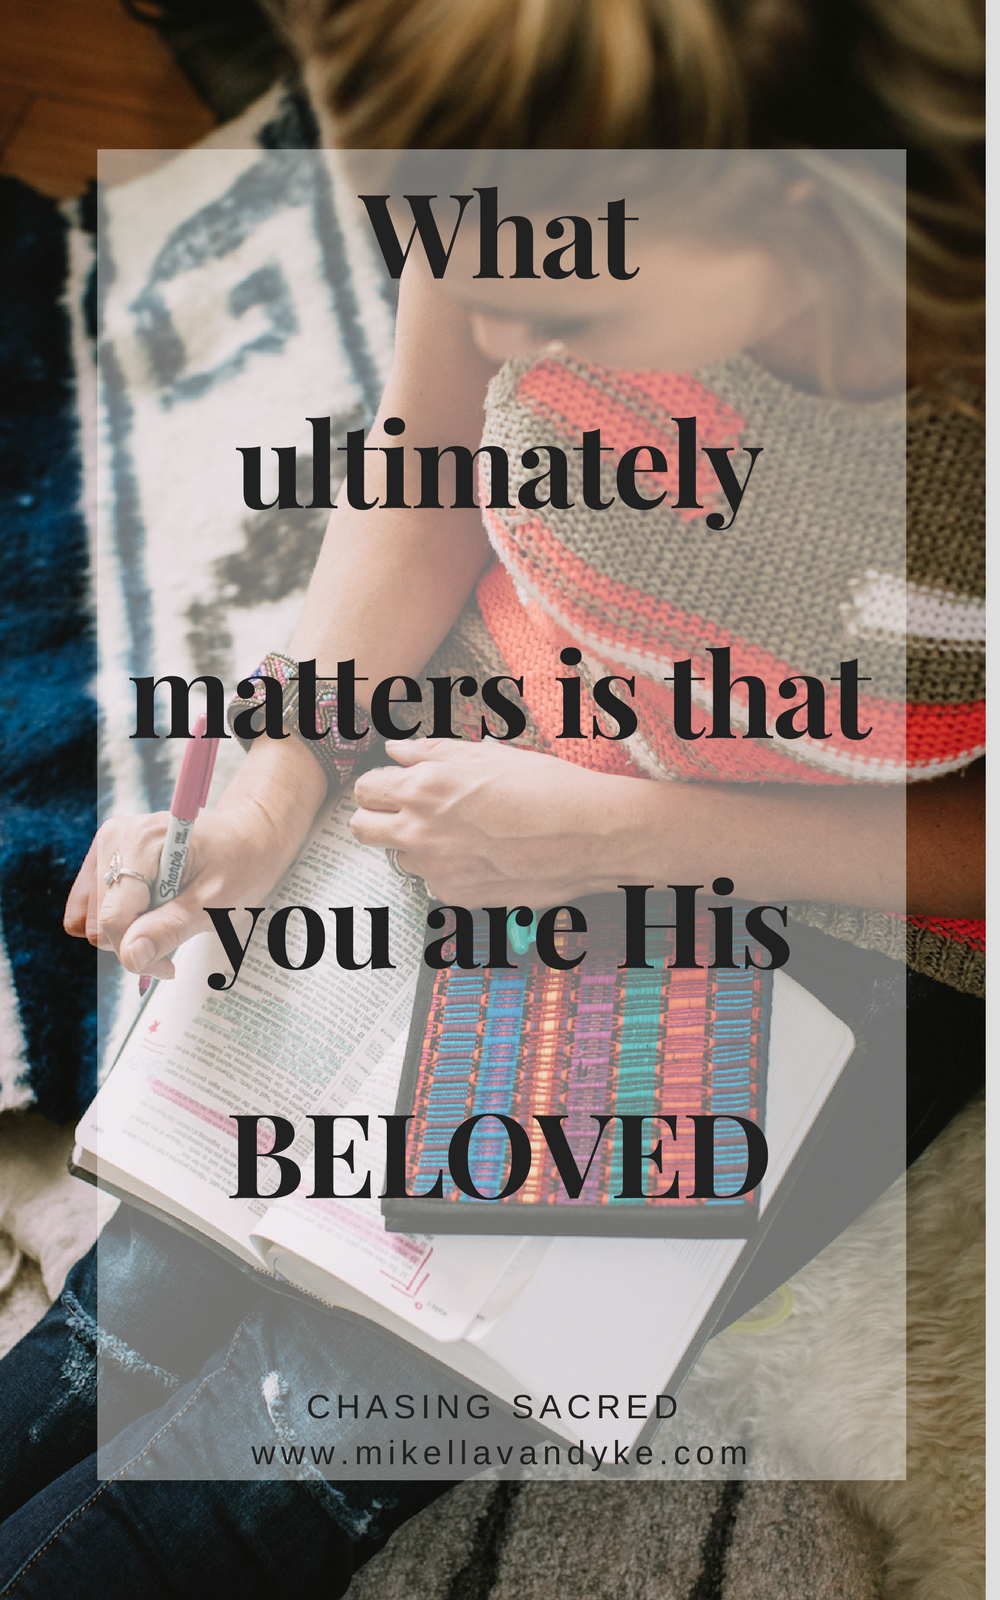 What ultimately matters is that you are His beloved.